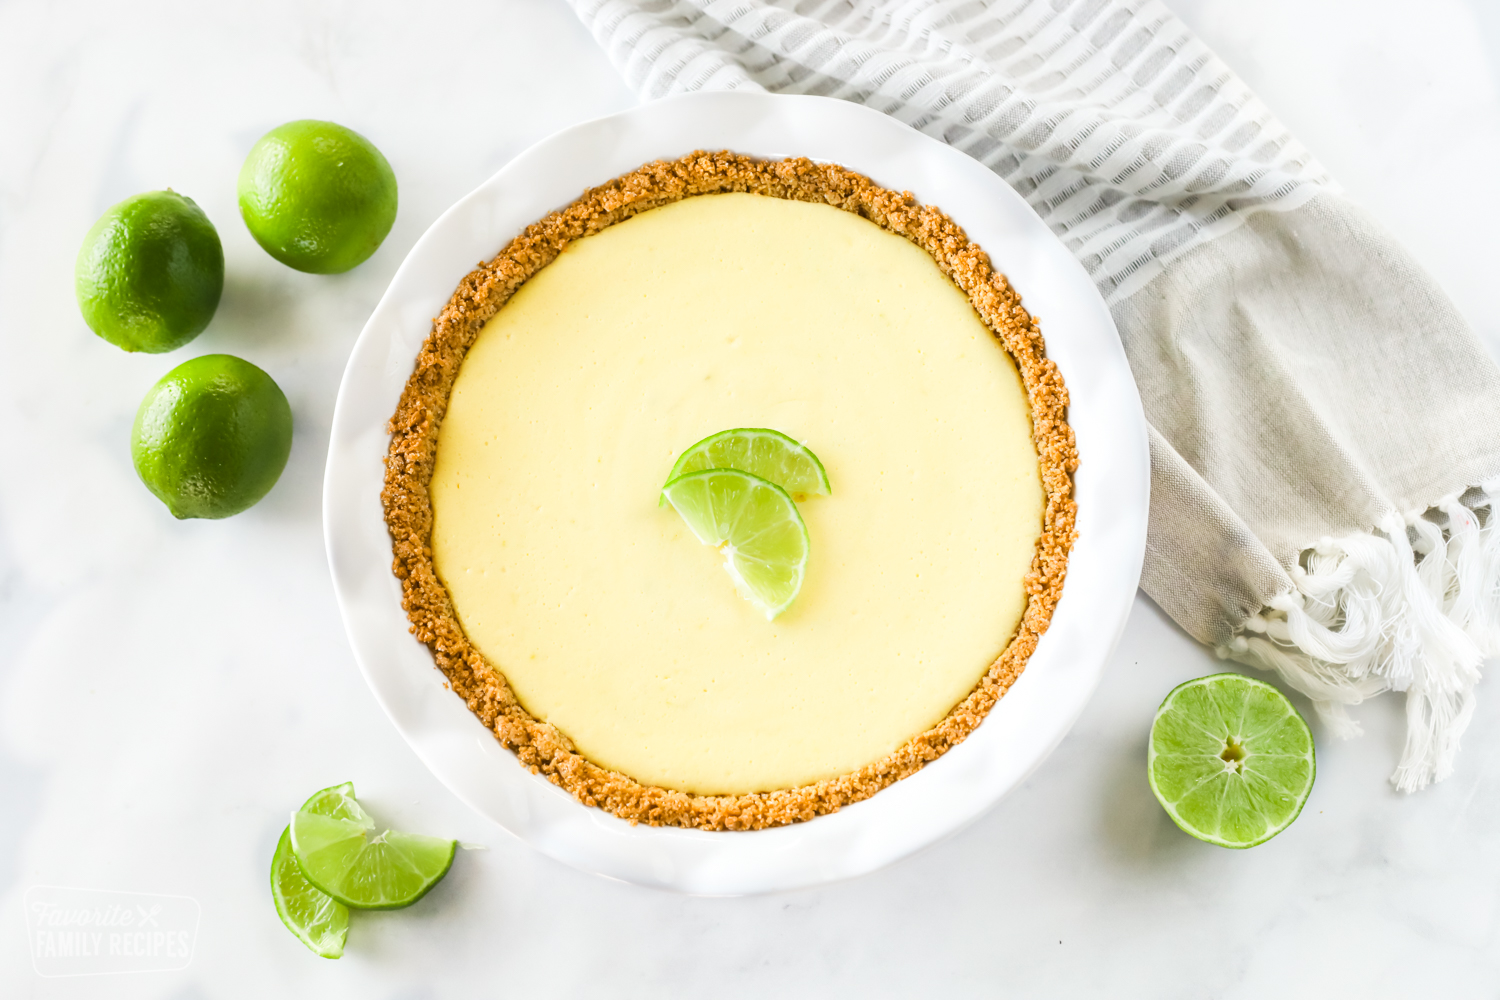 A top view of a fresh key lime pie with lime wedges and whole limes